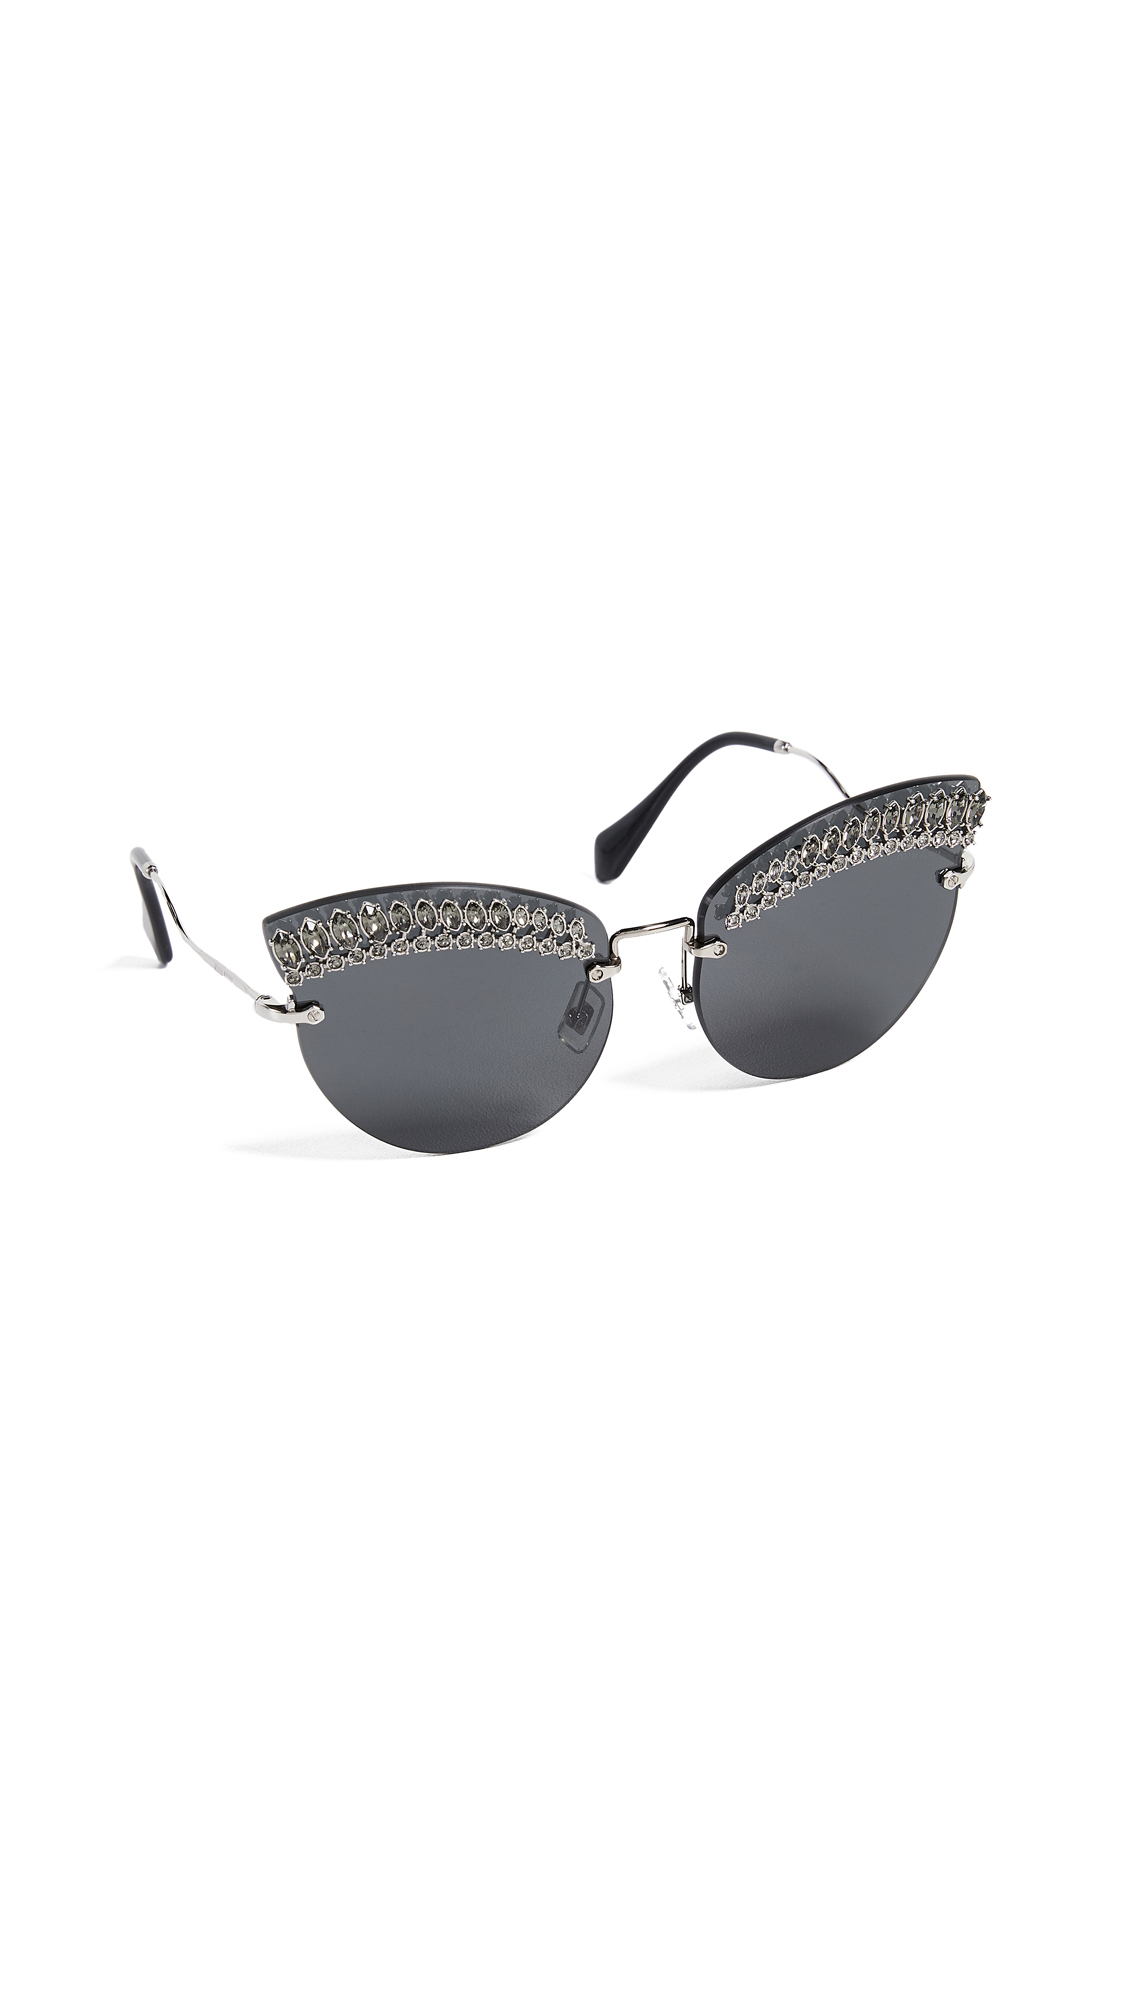 Miu Miu Crystal Cat Eye Sunglasses In Silver/Grey